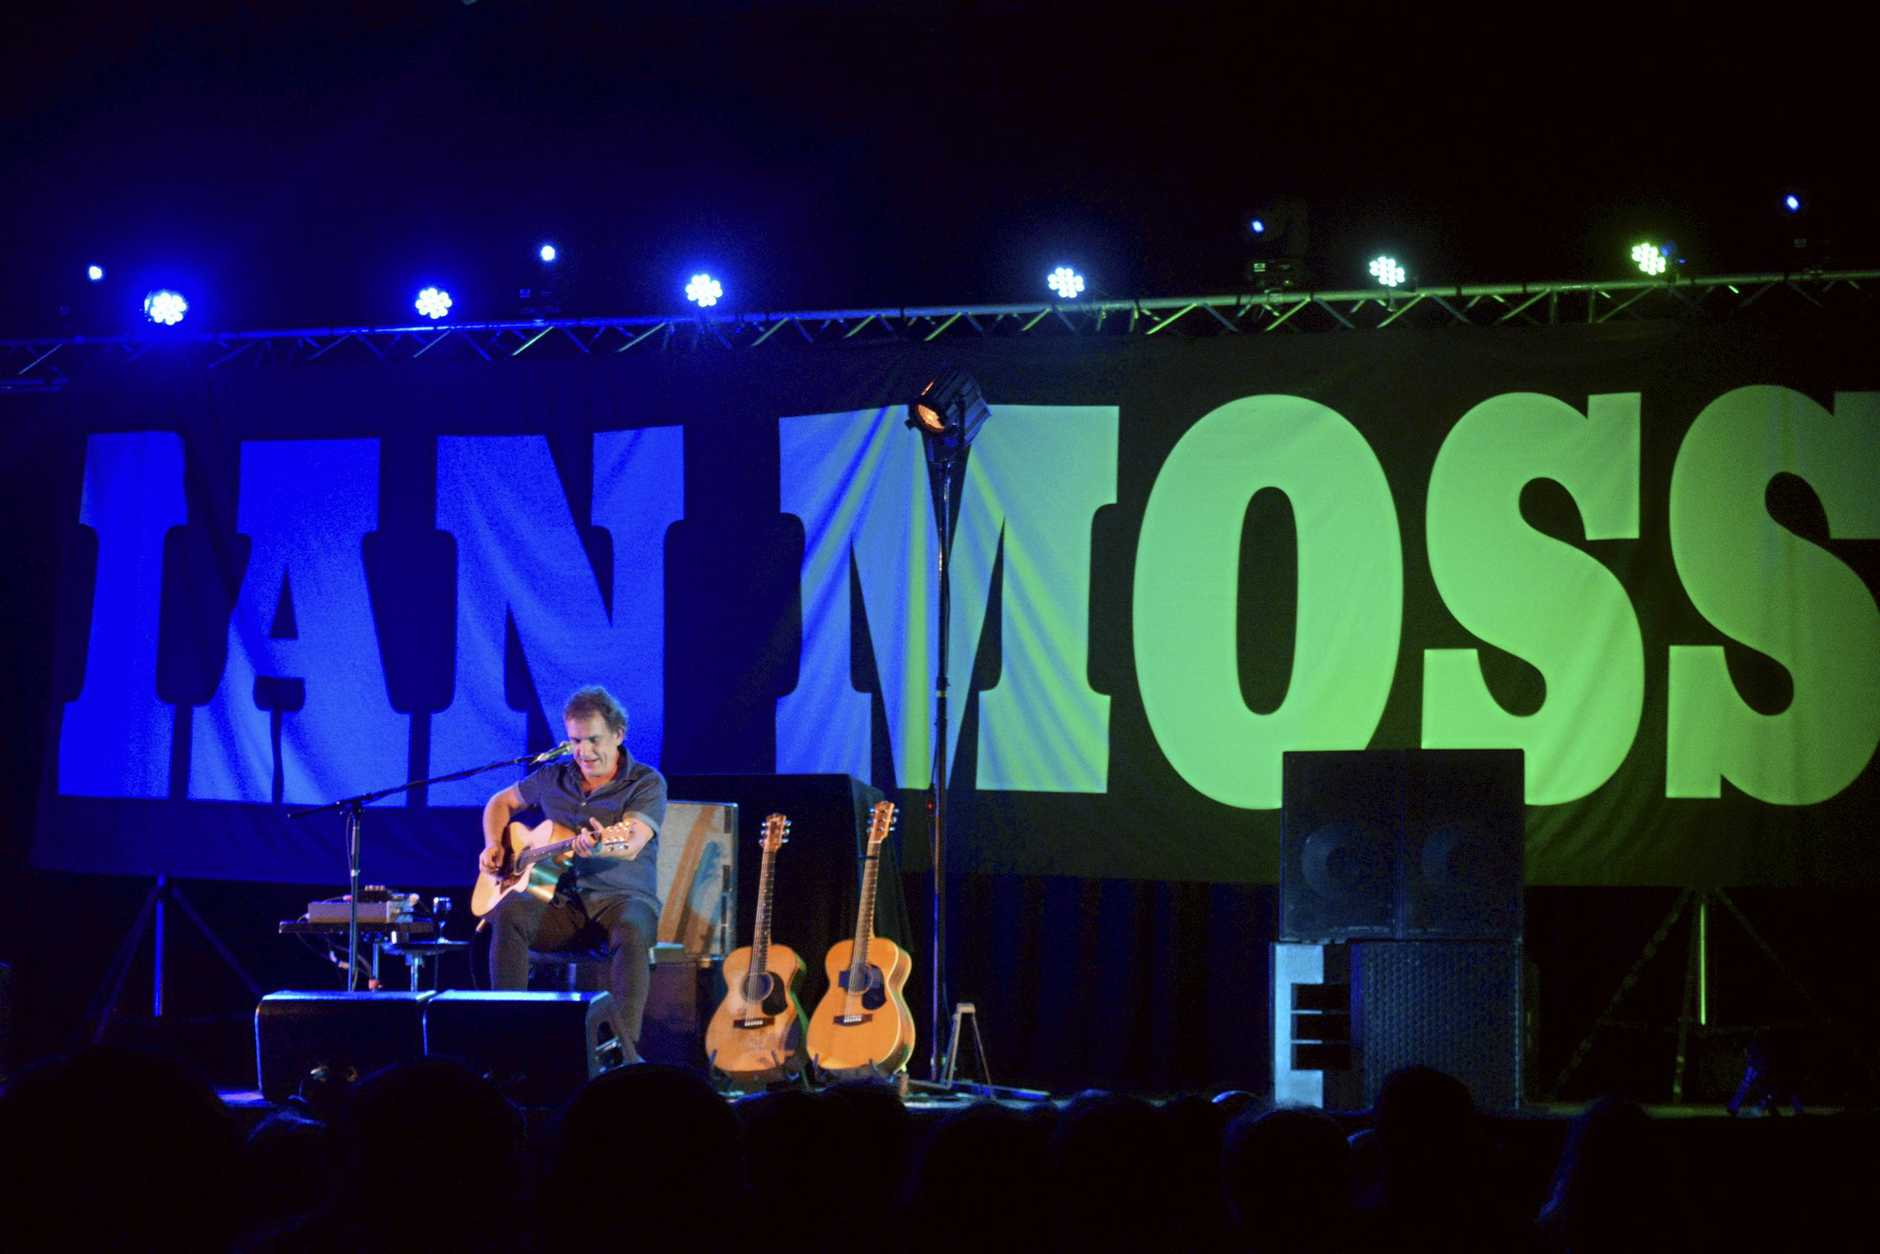 Ian Moss filled the Saraton Theatre with some amazing sounds in August.